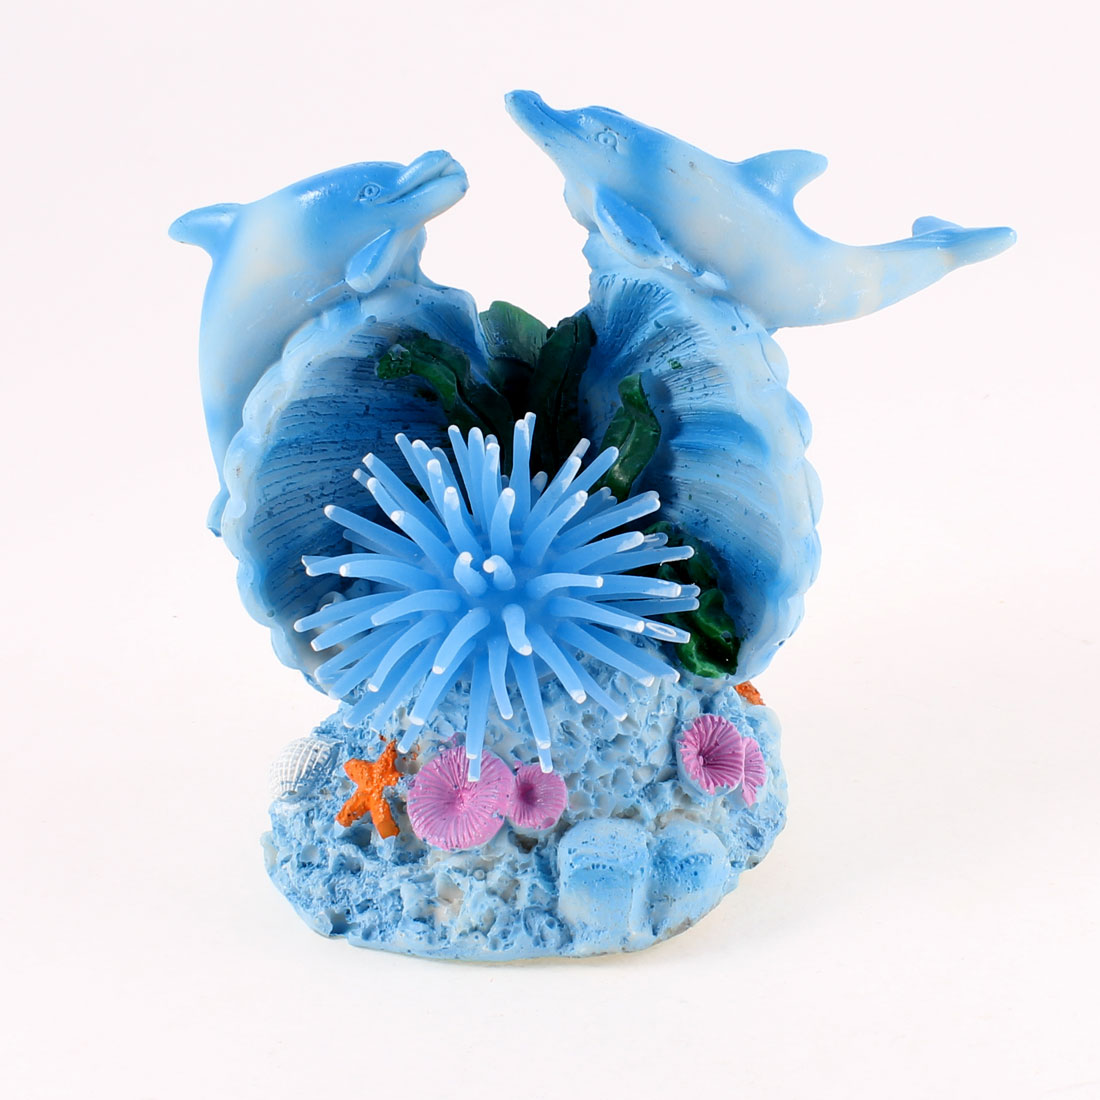 2 Pieces Blue Resin Dolphin Silicone Sea Anemone Decoration for Fish Tank